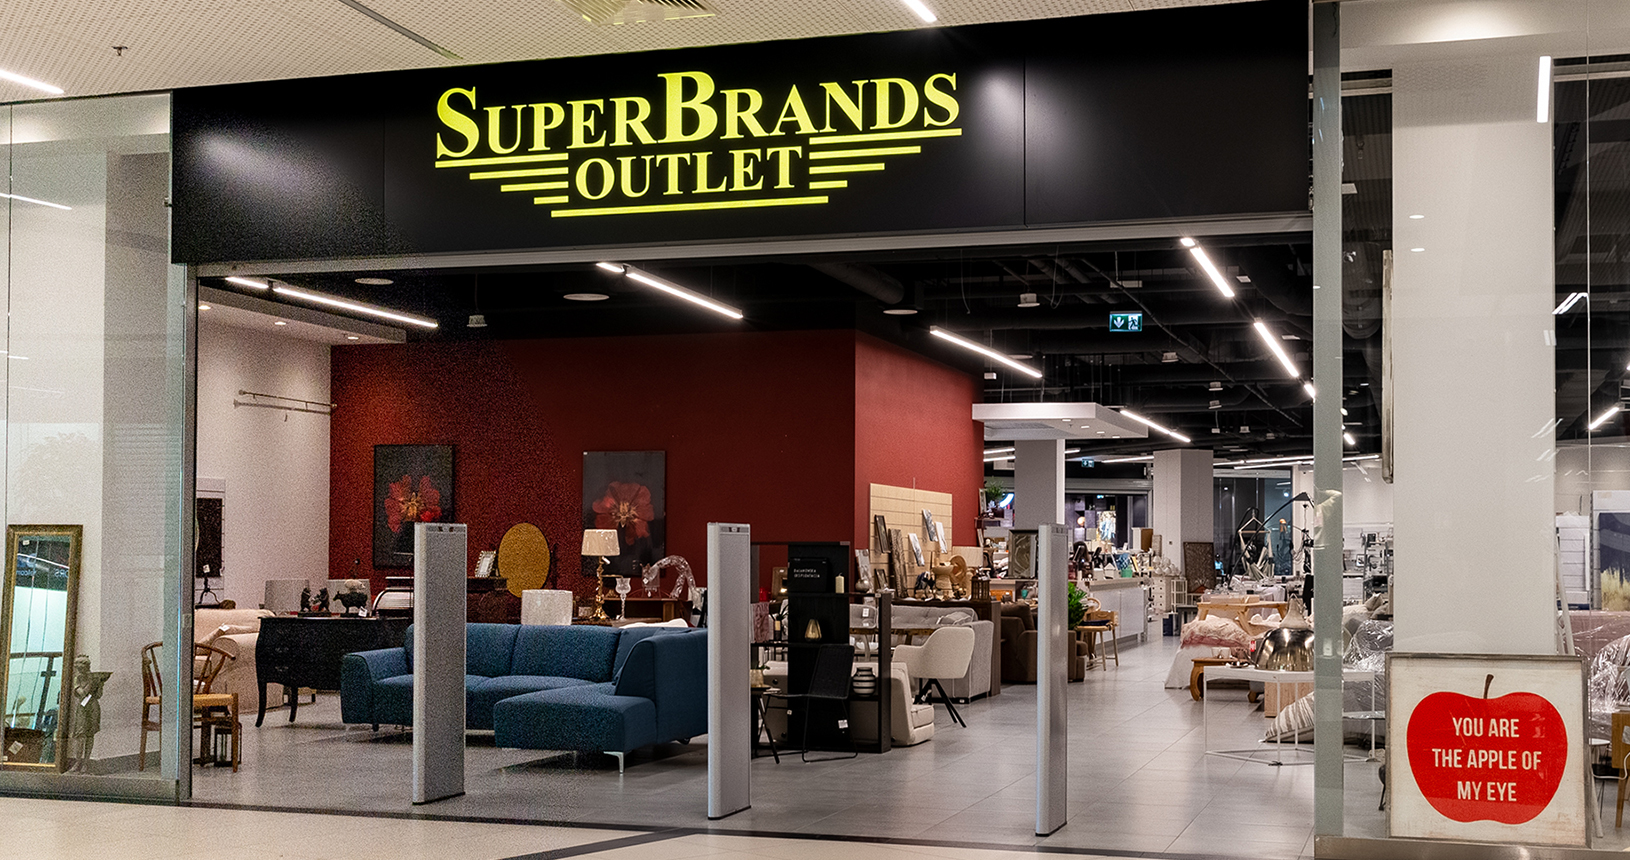 Super Brands Outlet